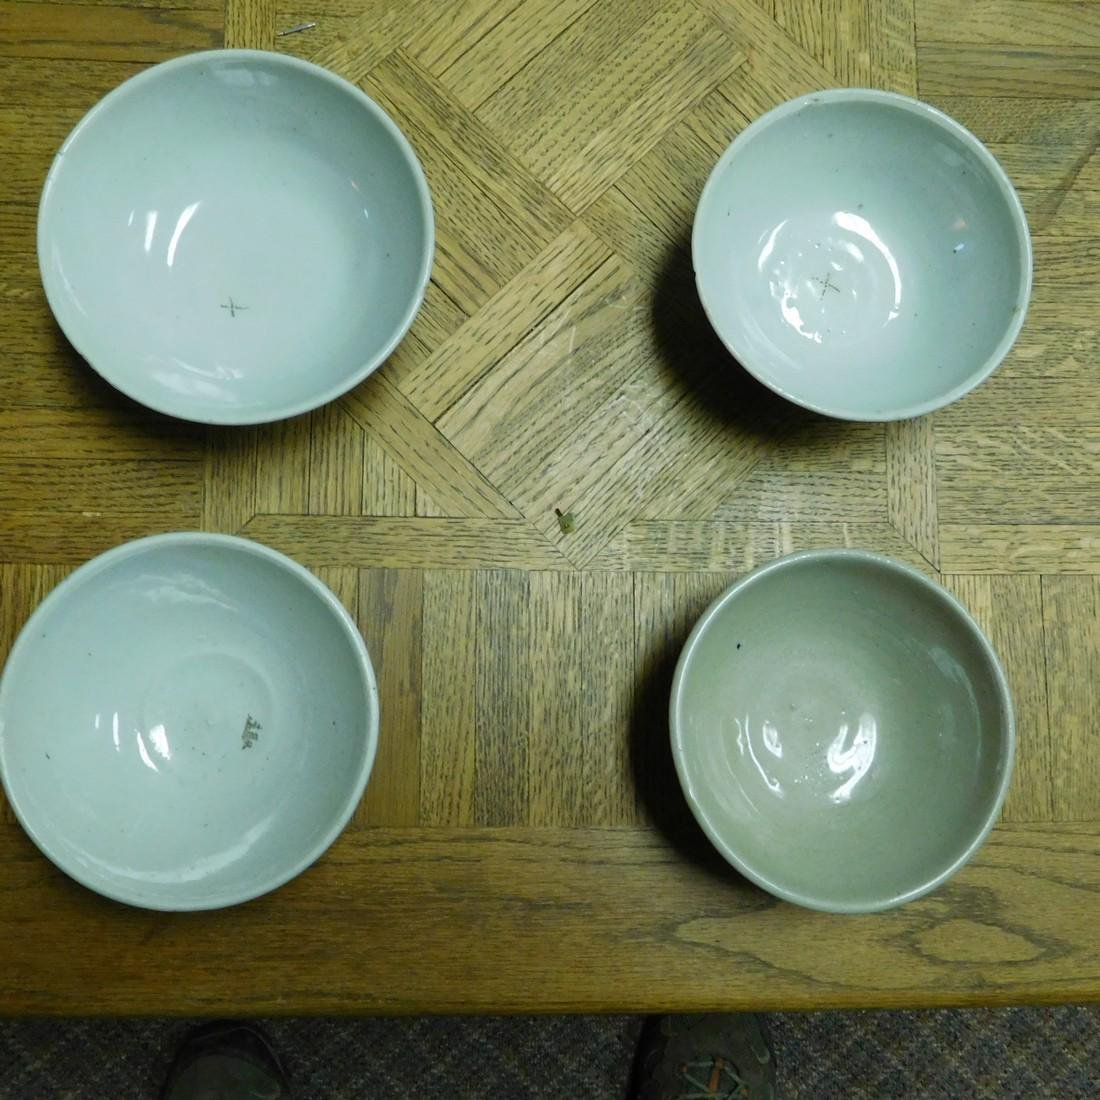 Set of (8) Chinese antique bowls - Qing Dynasty bowls - 6